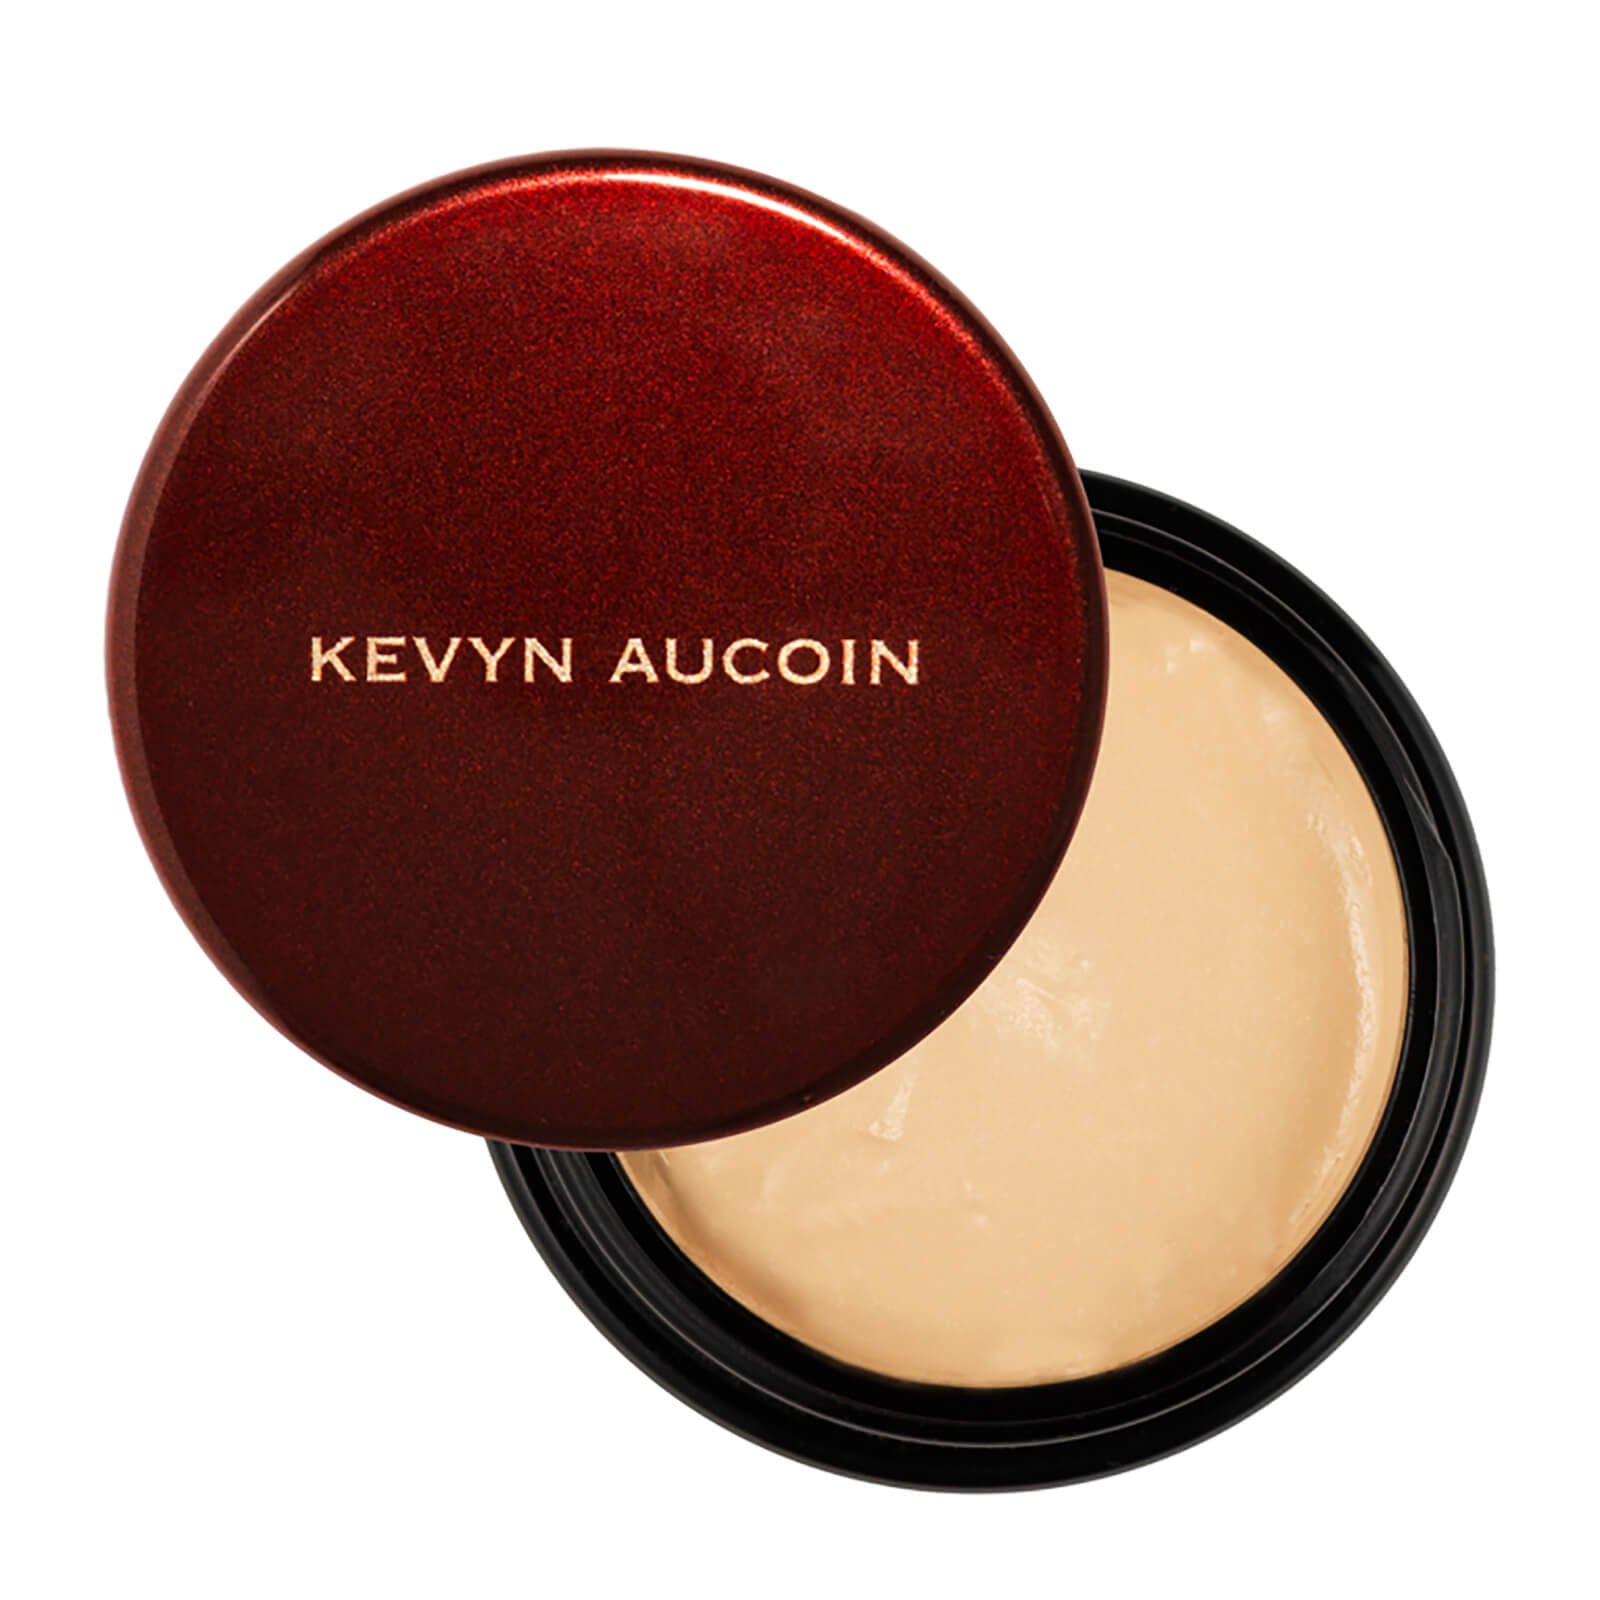 Kevyn Aucoin The Sensual Skin Enhancer Various Shades Beautyexpert D Island Shoes Slip On Zipper Wrinkle Leather Black